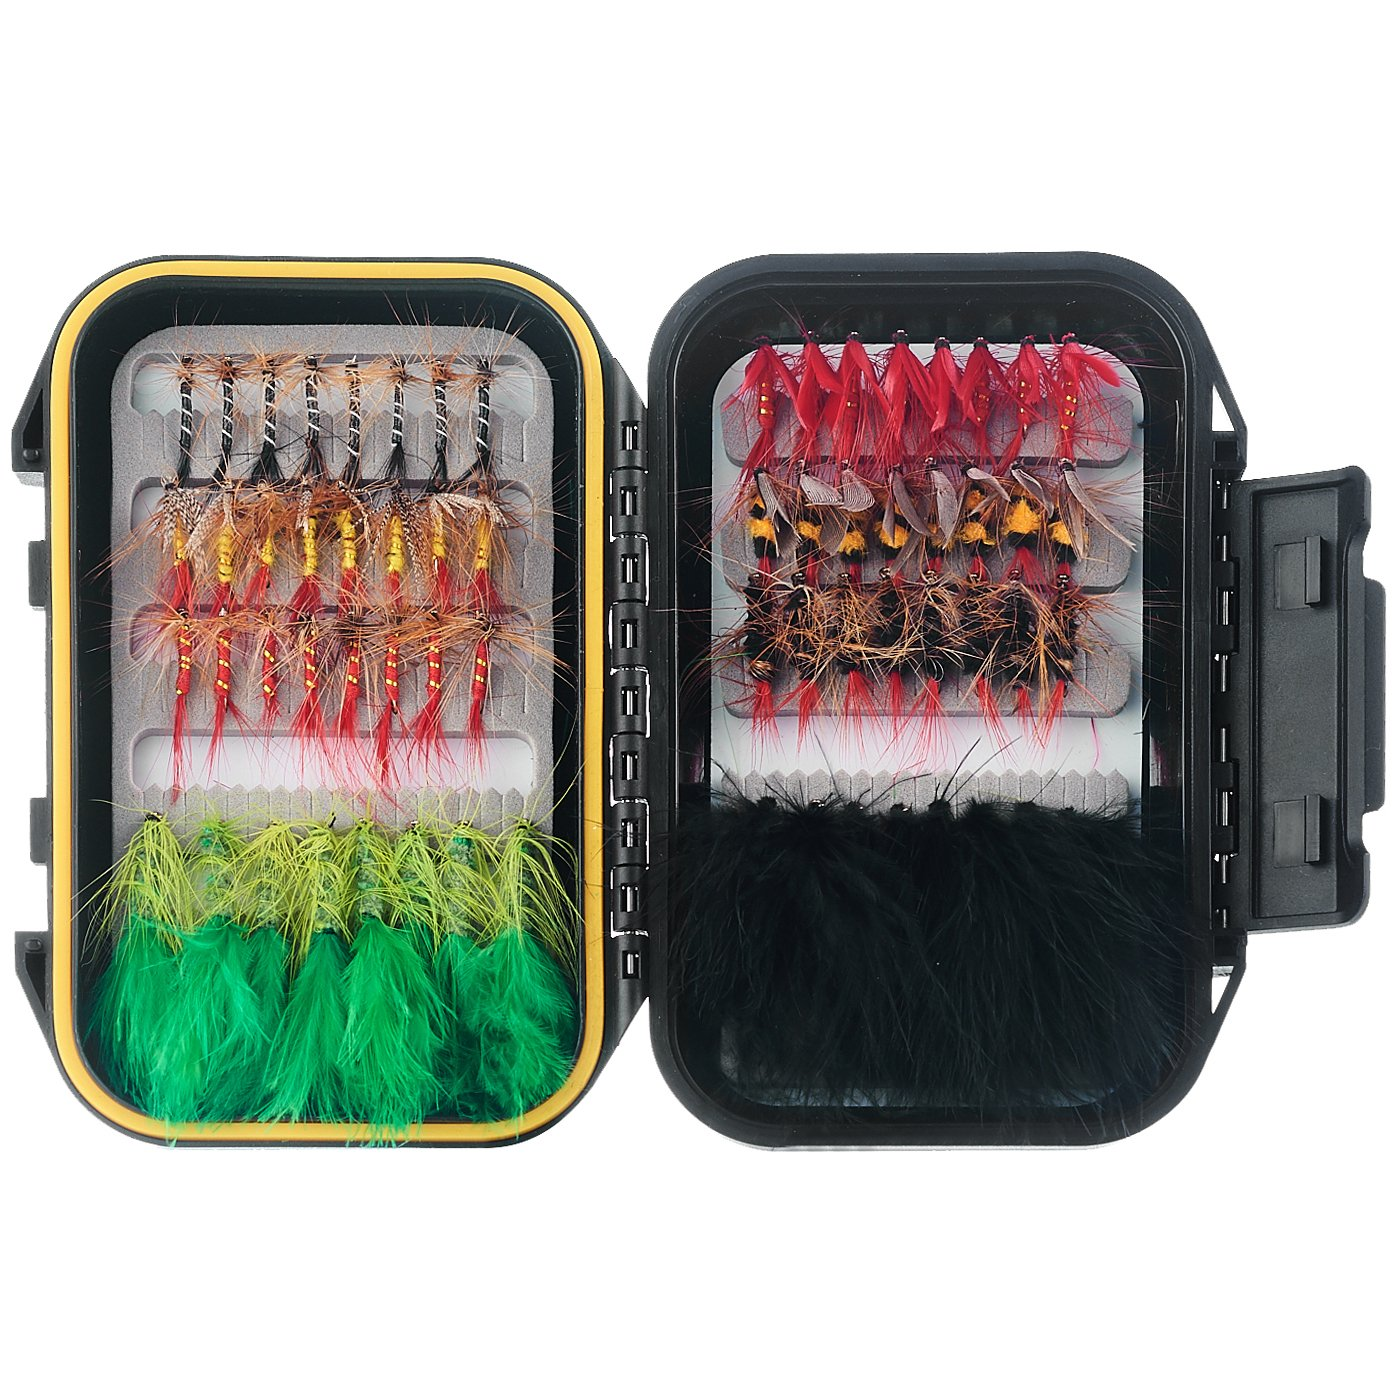 FISHINGSIR 64 PCS Fly Fishing Flies Set Included Dry Flies,Wet Flies,Streamer, Nymph, Emerger Kit with Waterproof Fly Box